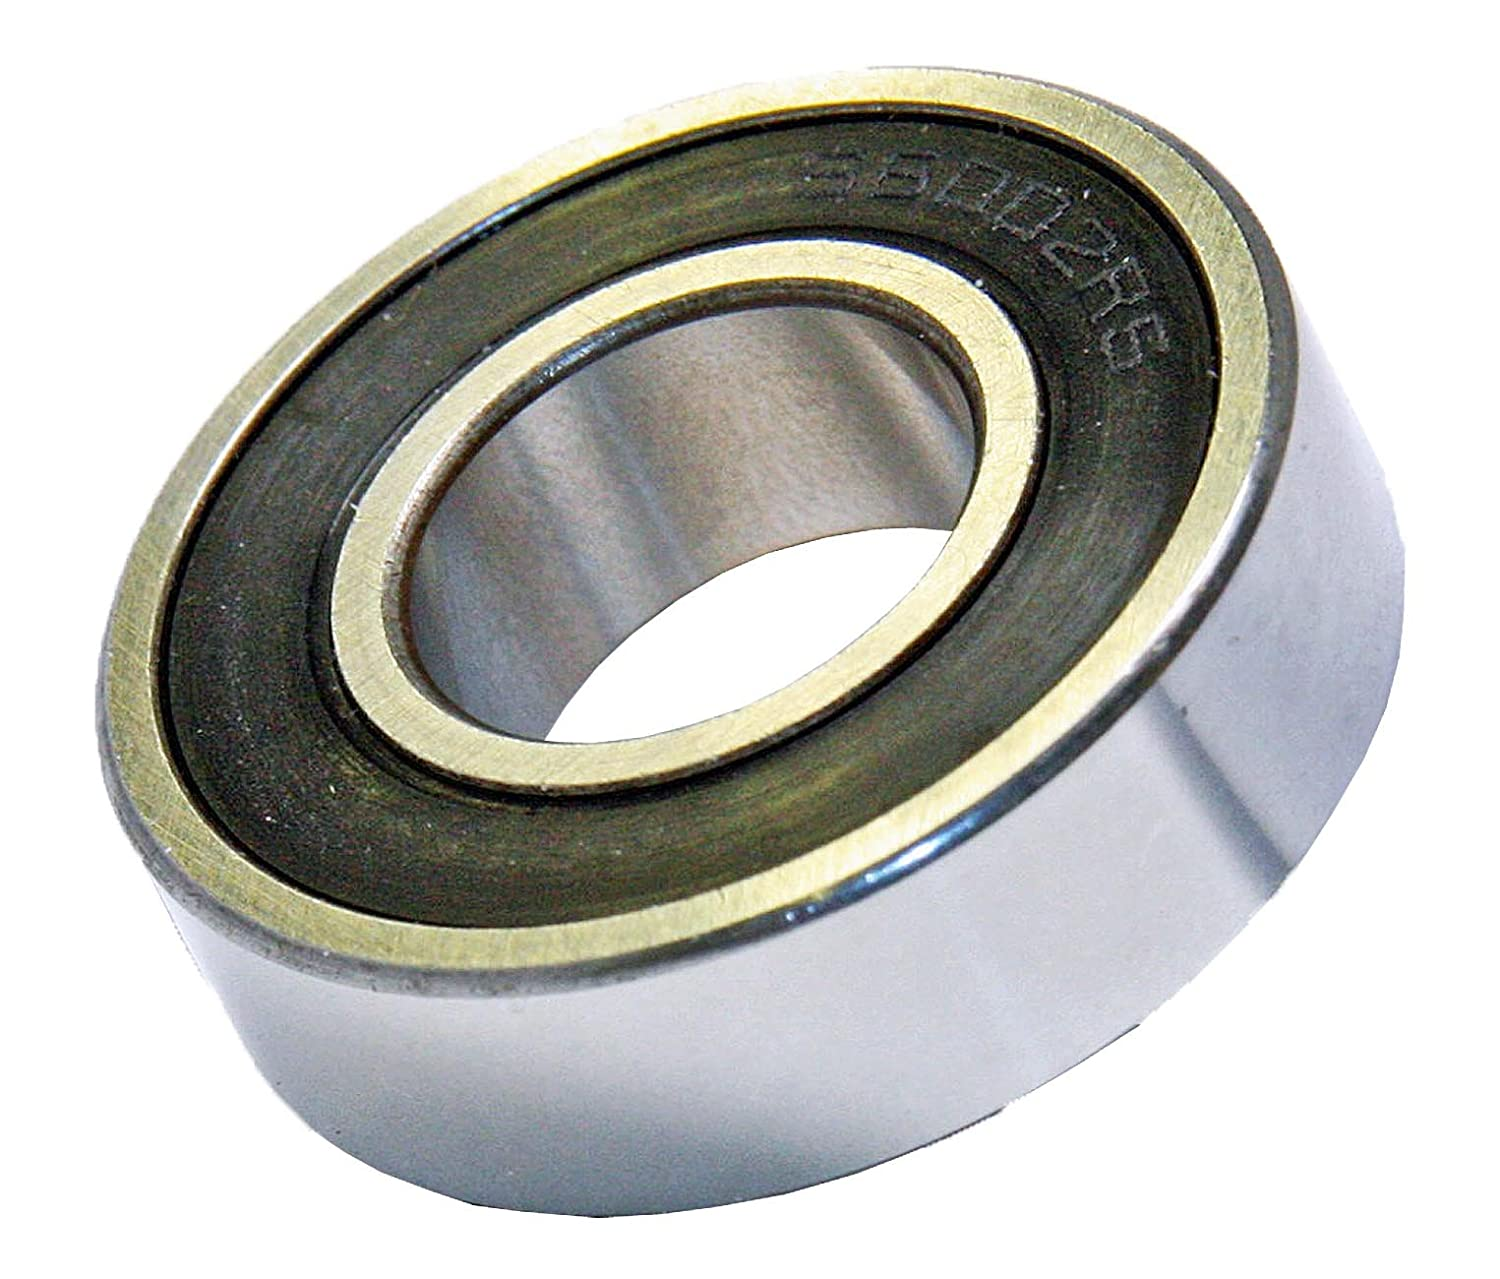 Home Appliances Donepart 6002RS Bearings 6002-2RS Deep Groove Ball Bearings 15mmx32mmx9mm C3 High Speed for Electric Motor 4 Pcs Wheels Garden Tools